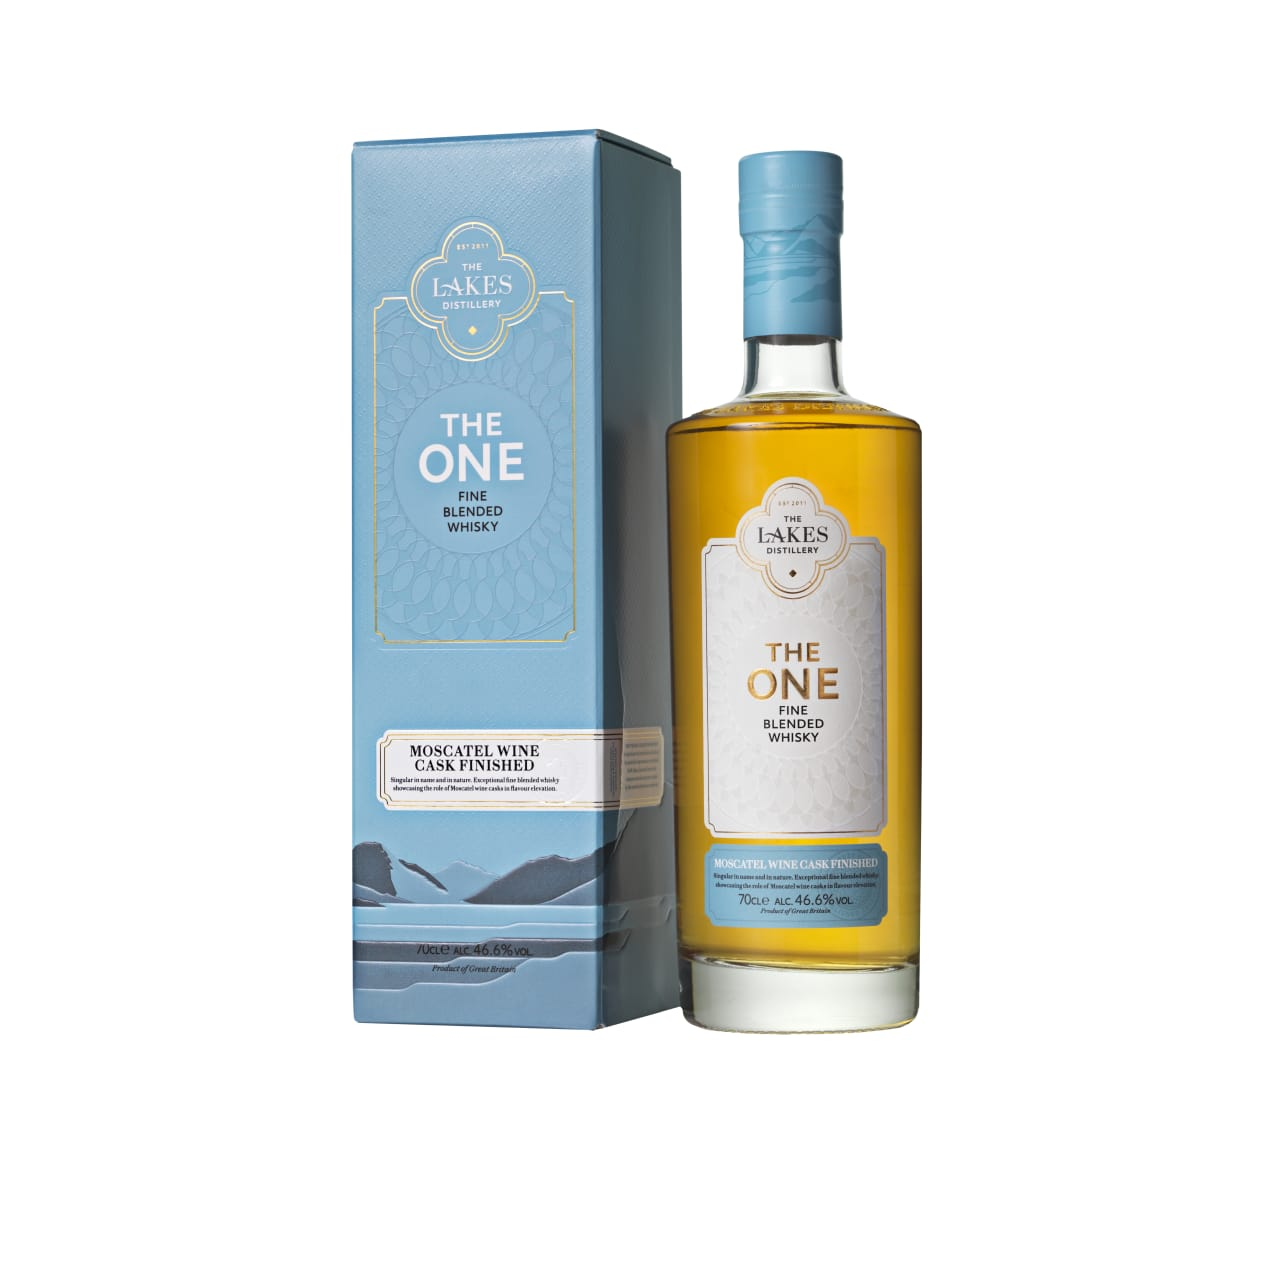 Product Image - The Lakes The One Moscatel Wine Cask Finish